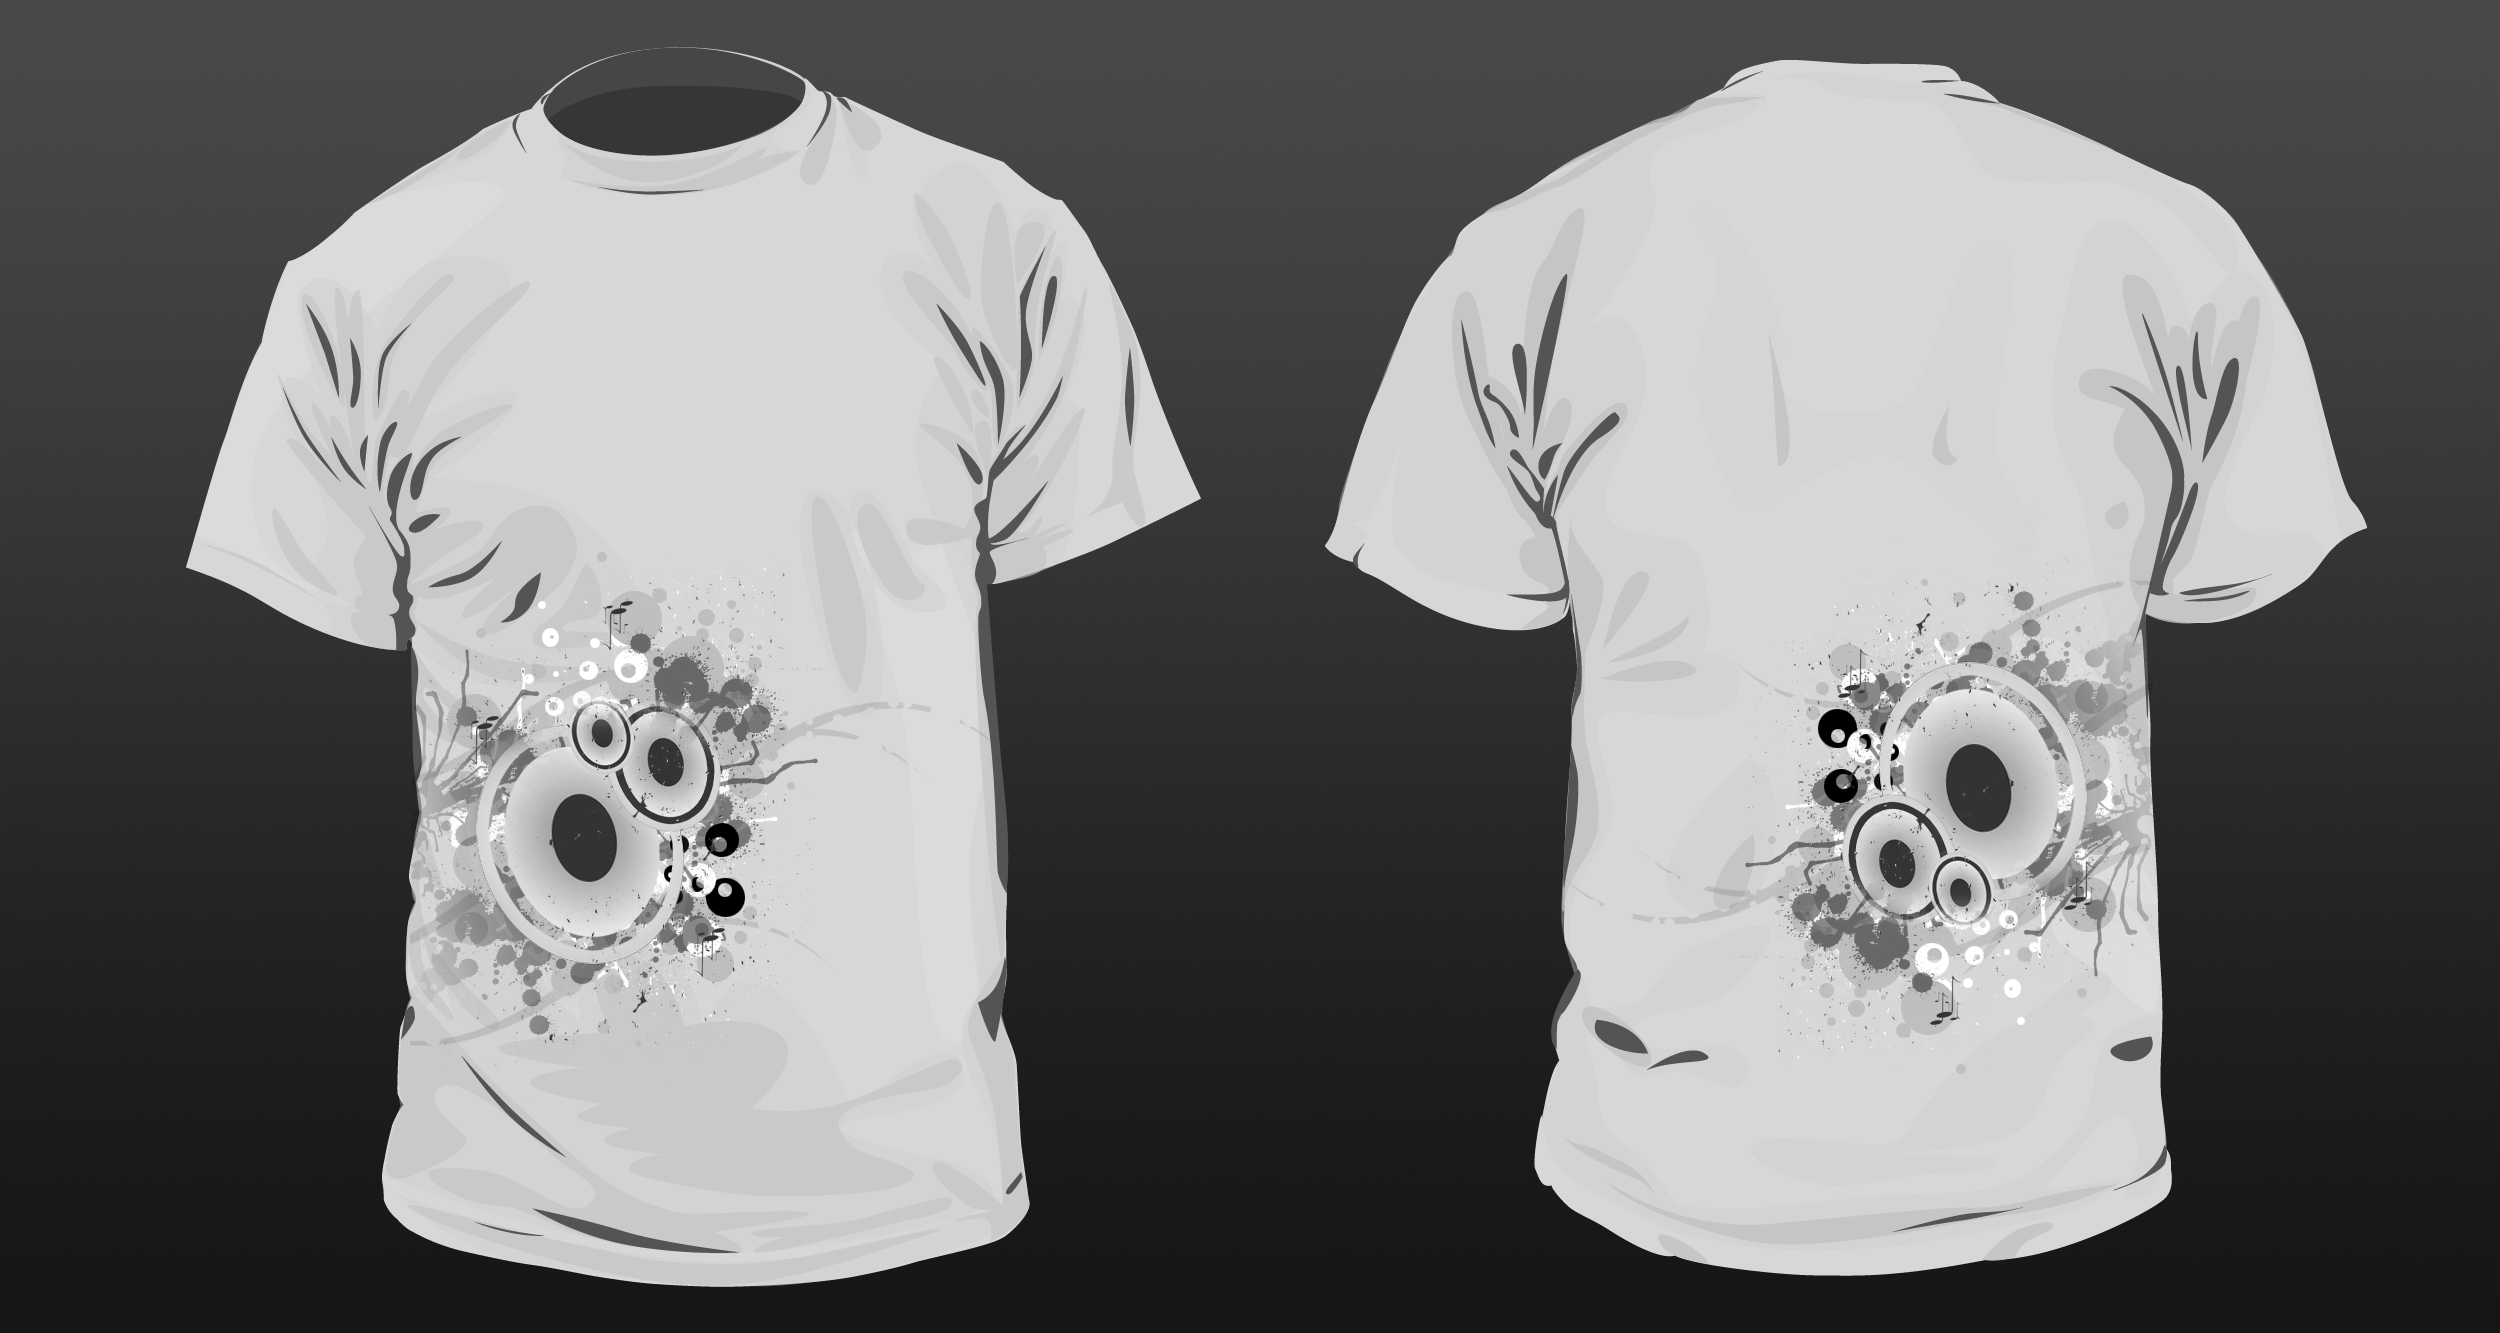 T Shirt Design Line Art : Creativity tshirt design by gkgfx on deviantart